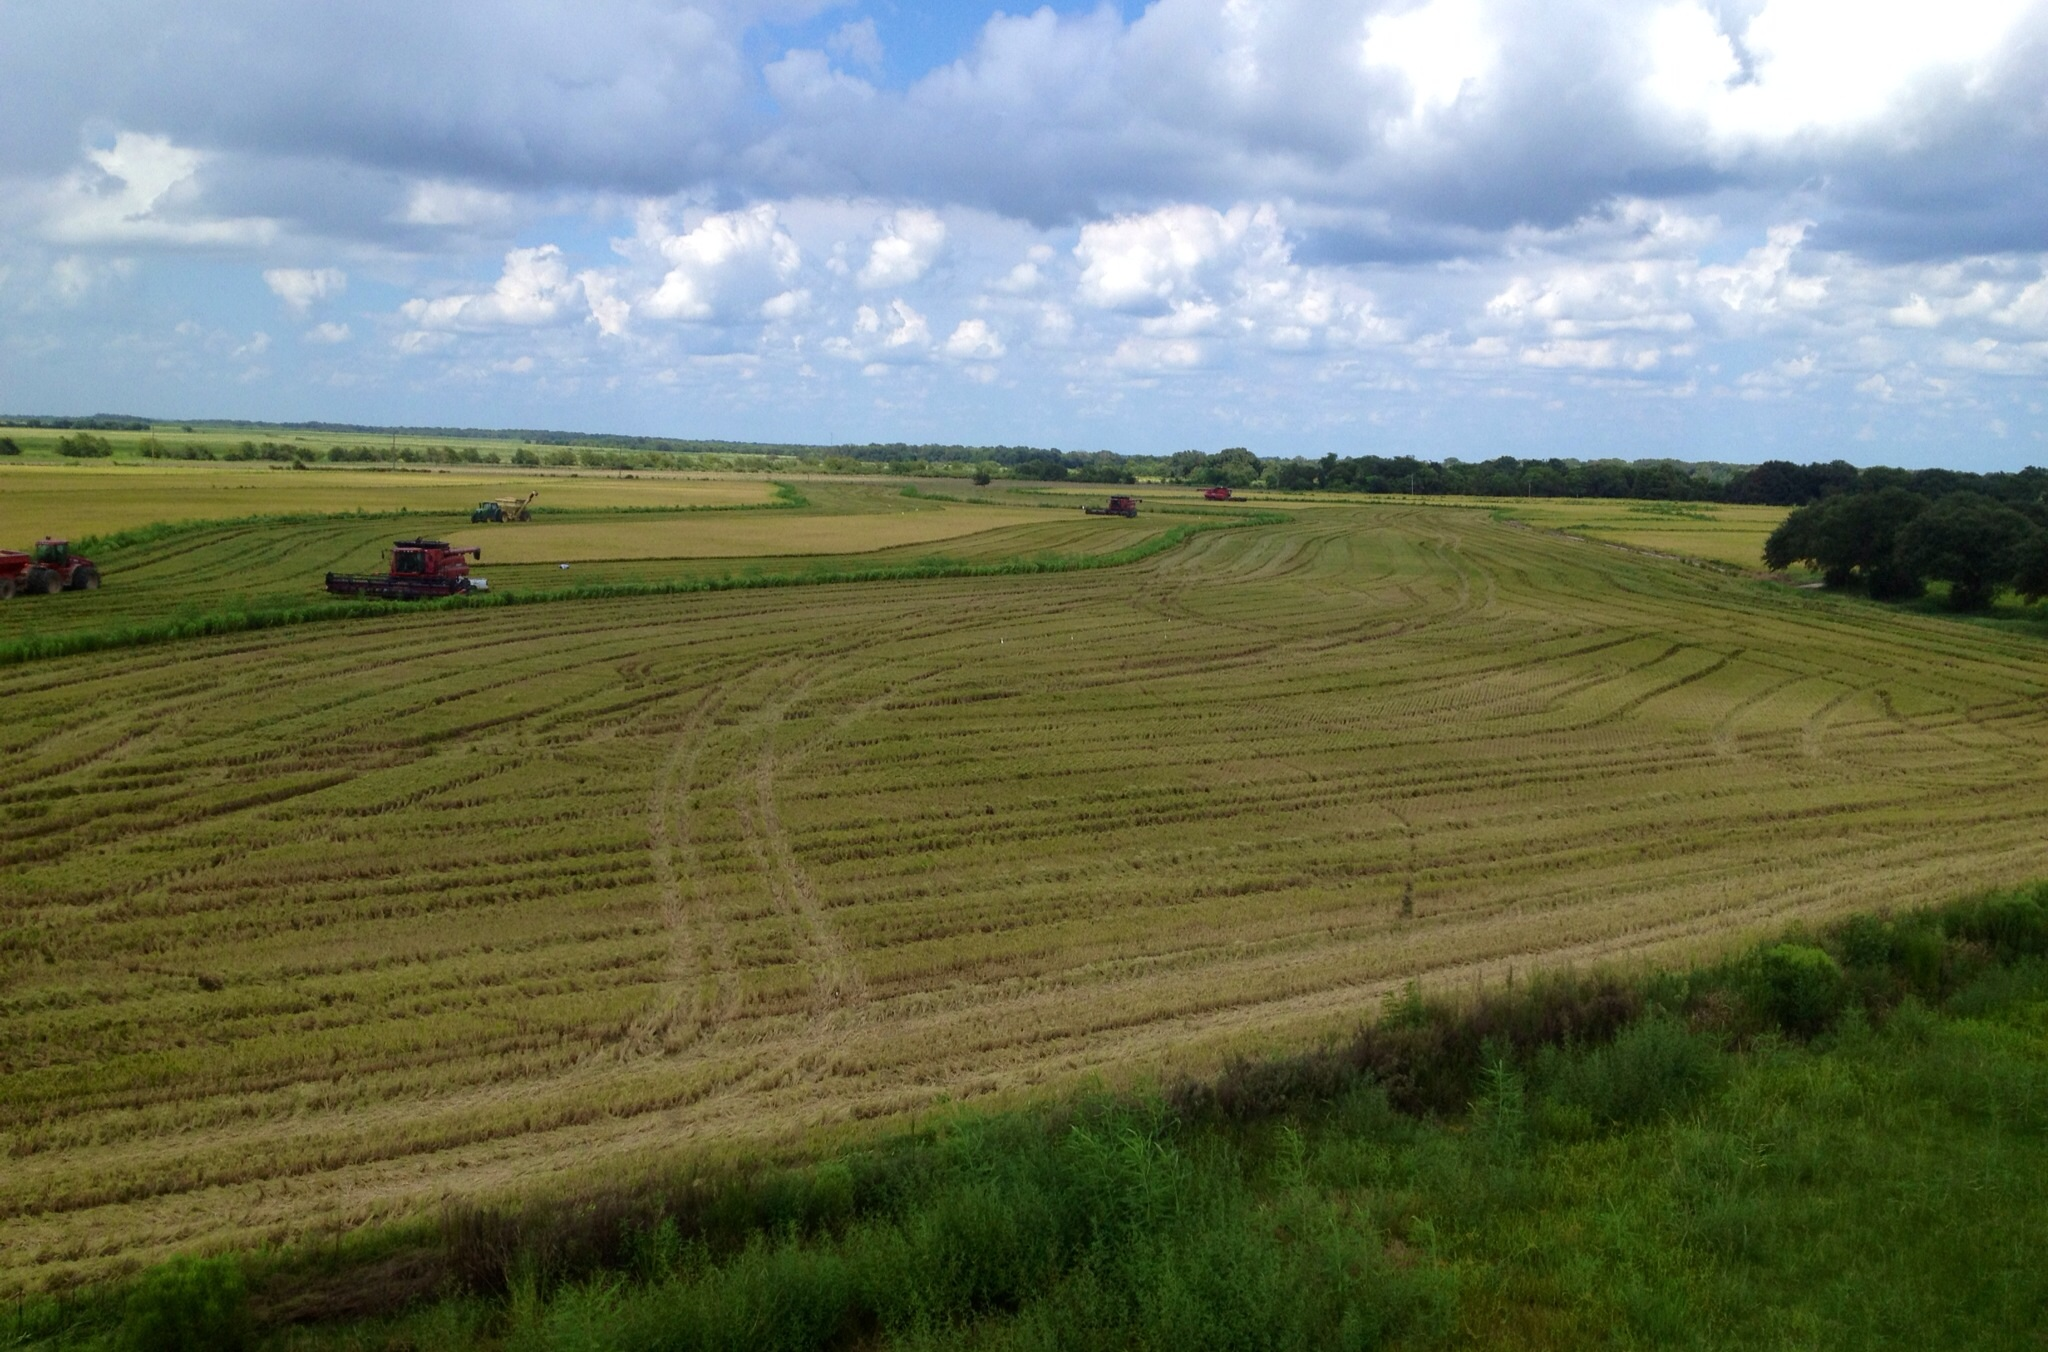 The view from the top of the bins over lookin the fields.